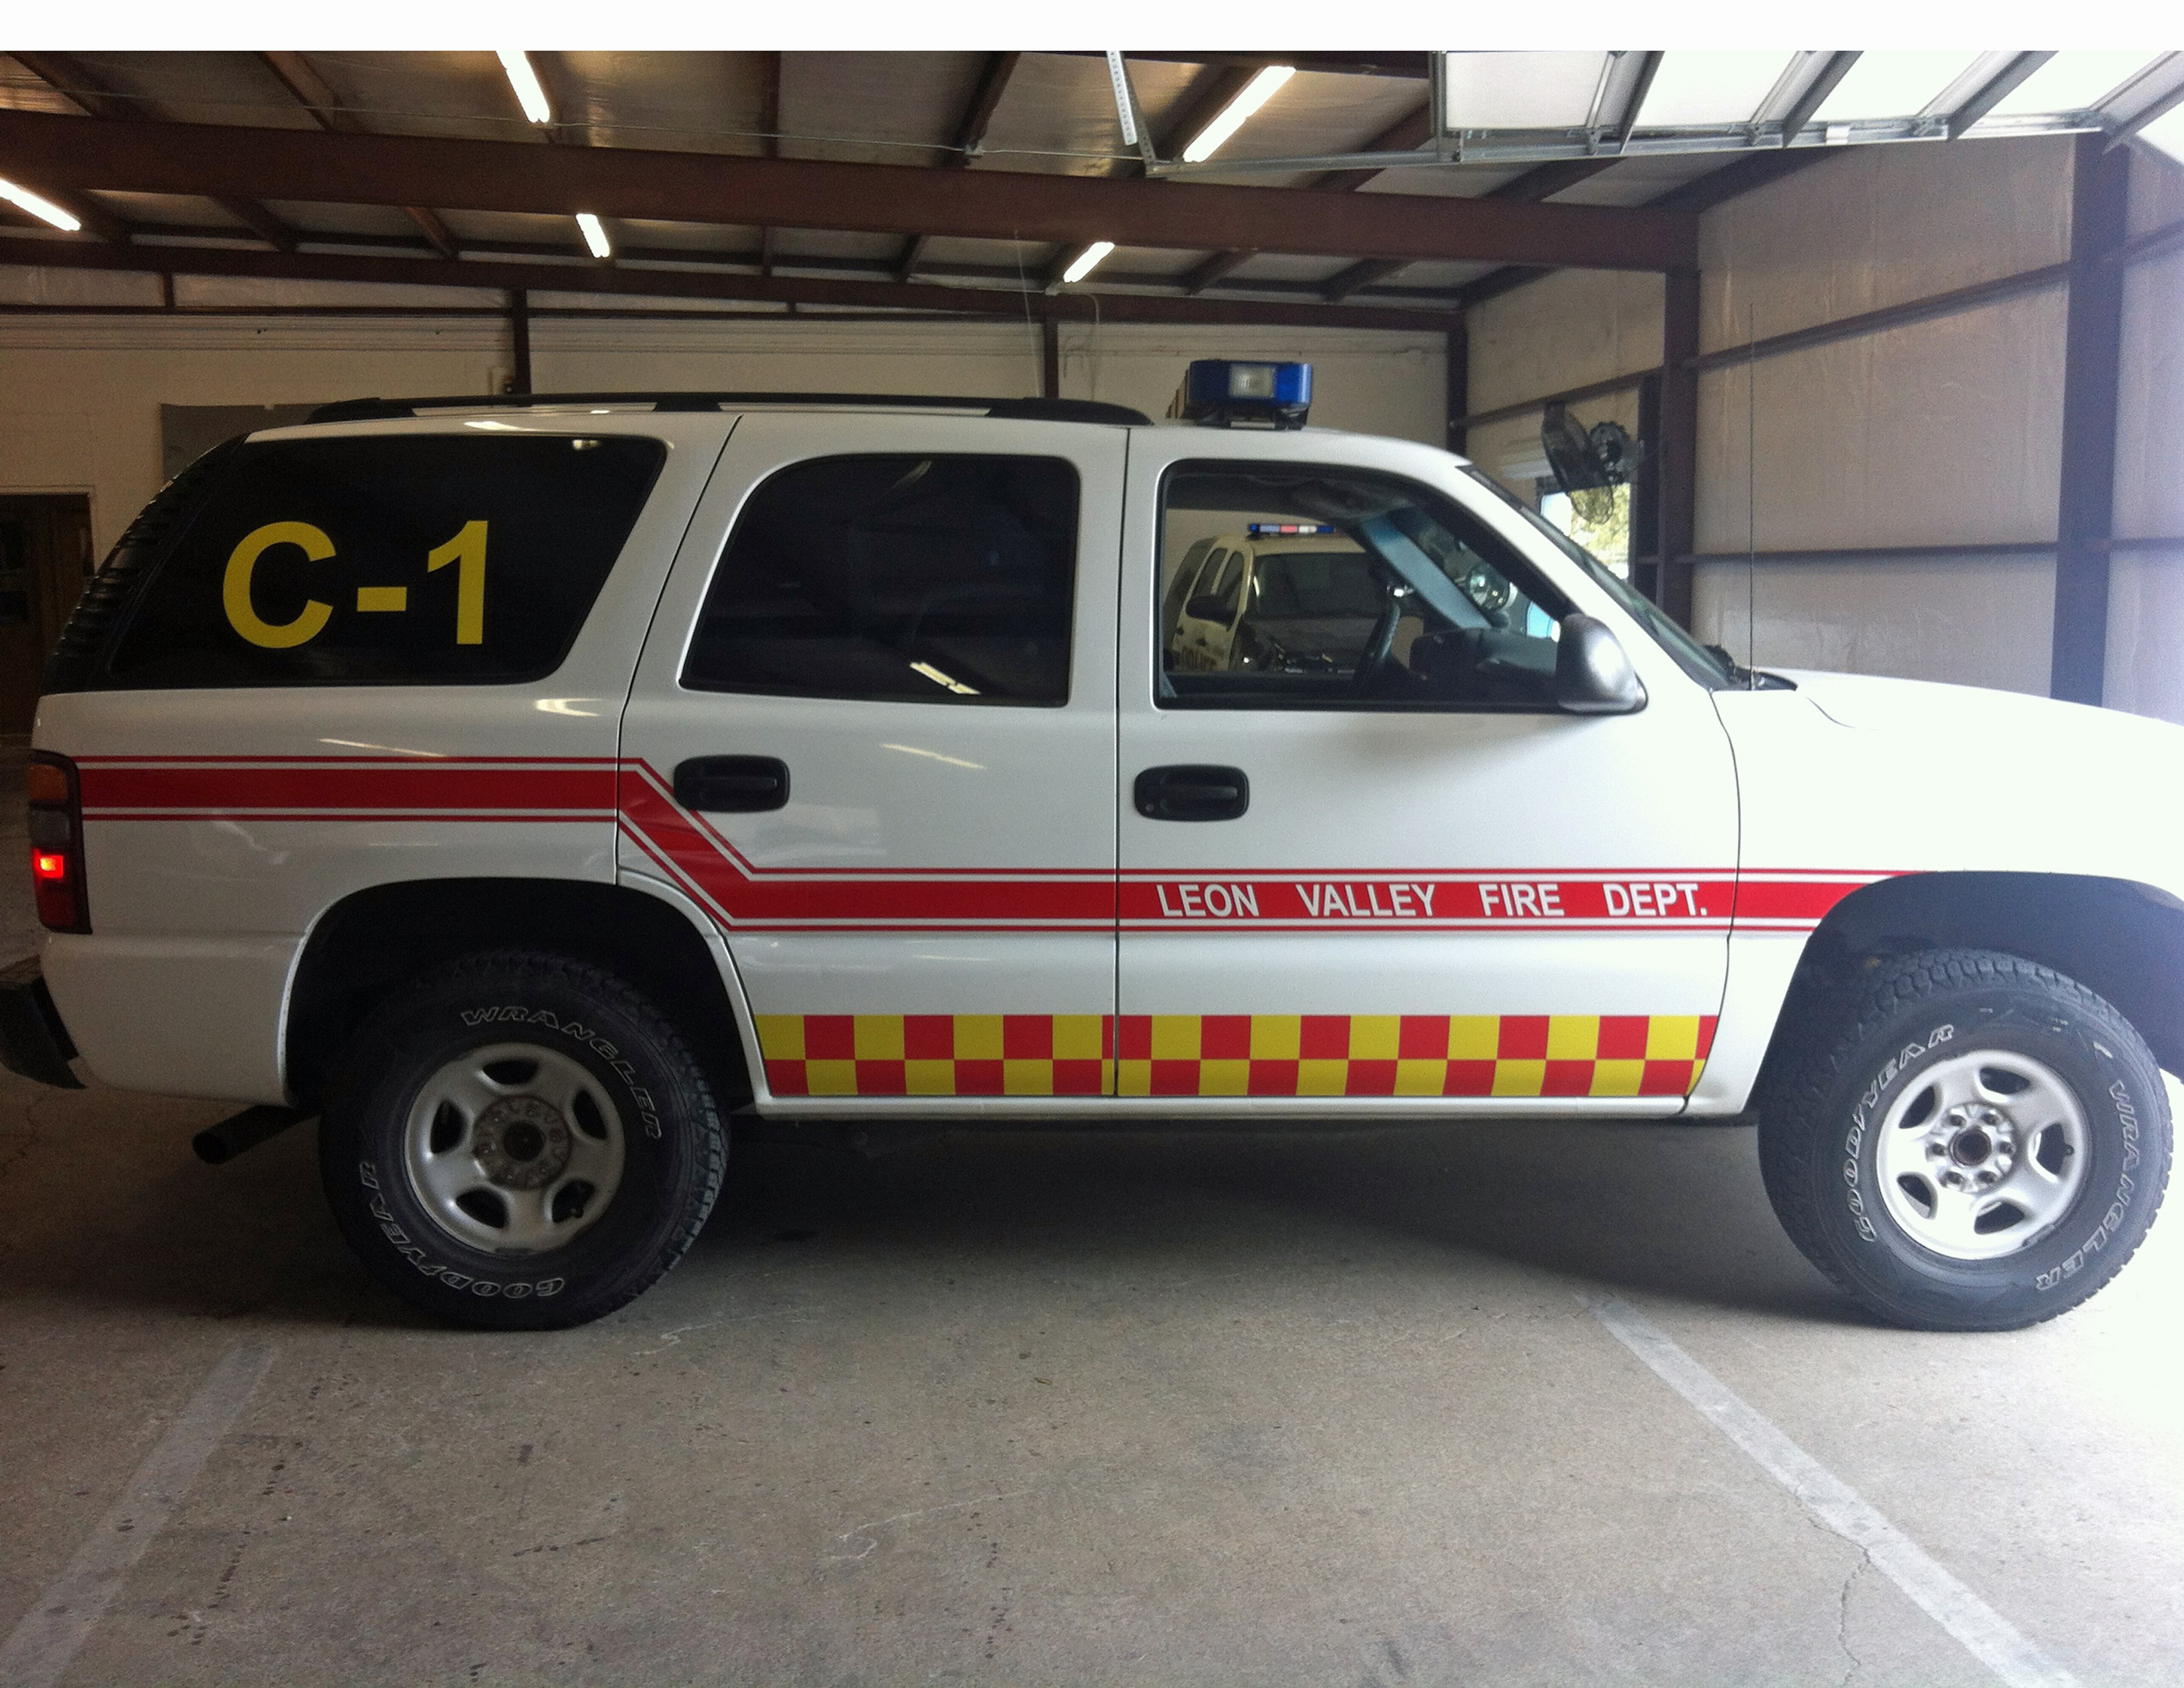 Leon Valley Fire Dept.aGraphics